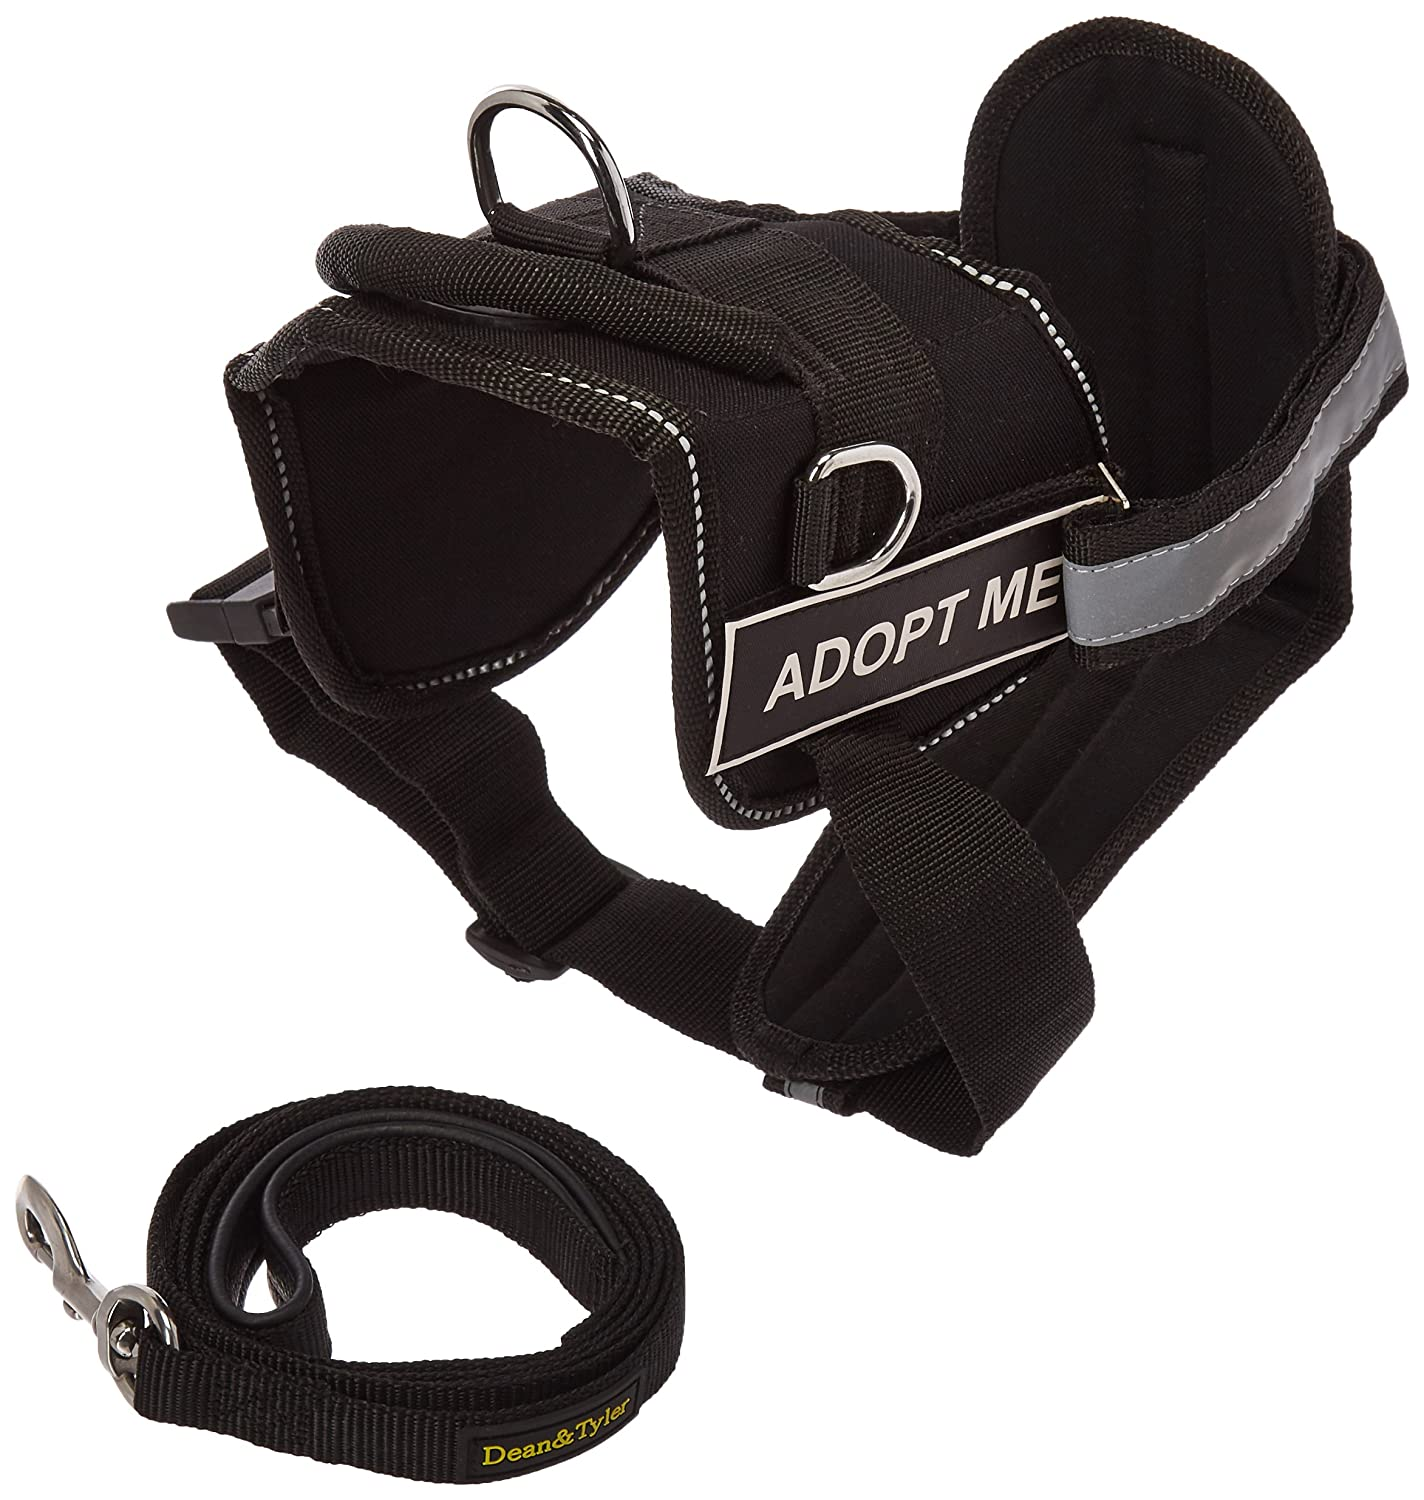 Dean & Tyler 25 by 34-Inch Adopt Me Dog Harness with Padded Puppy Leash, Small